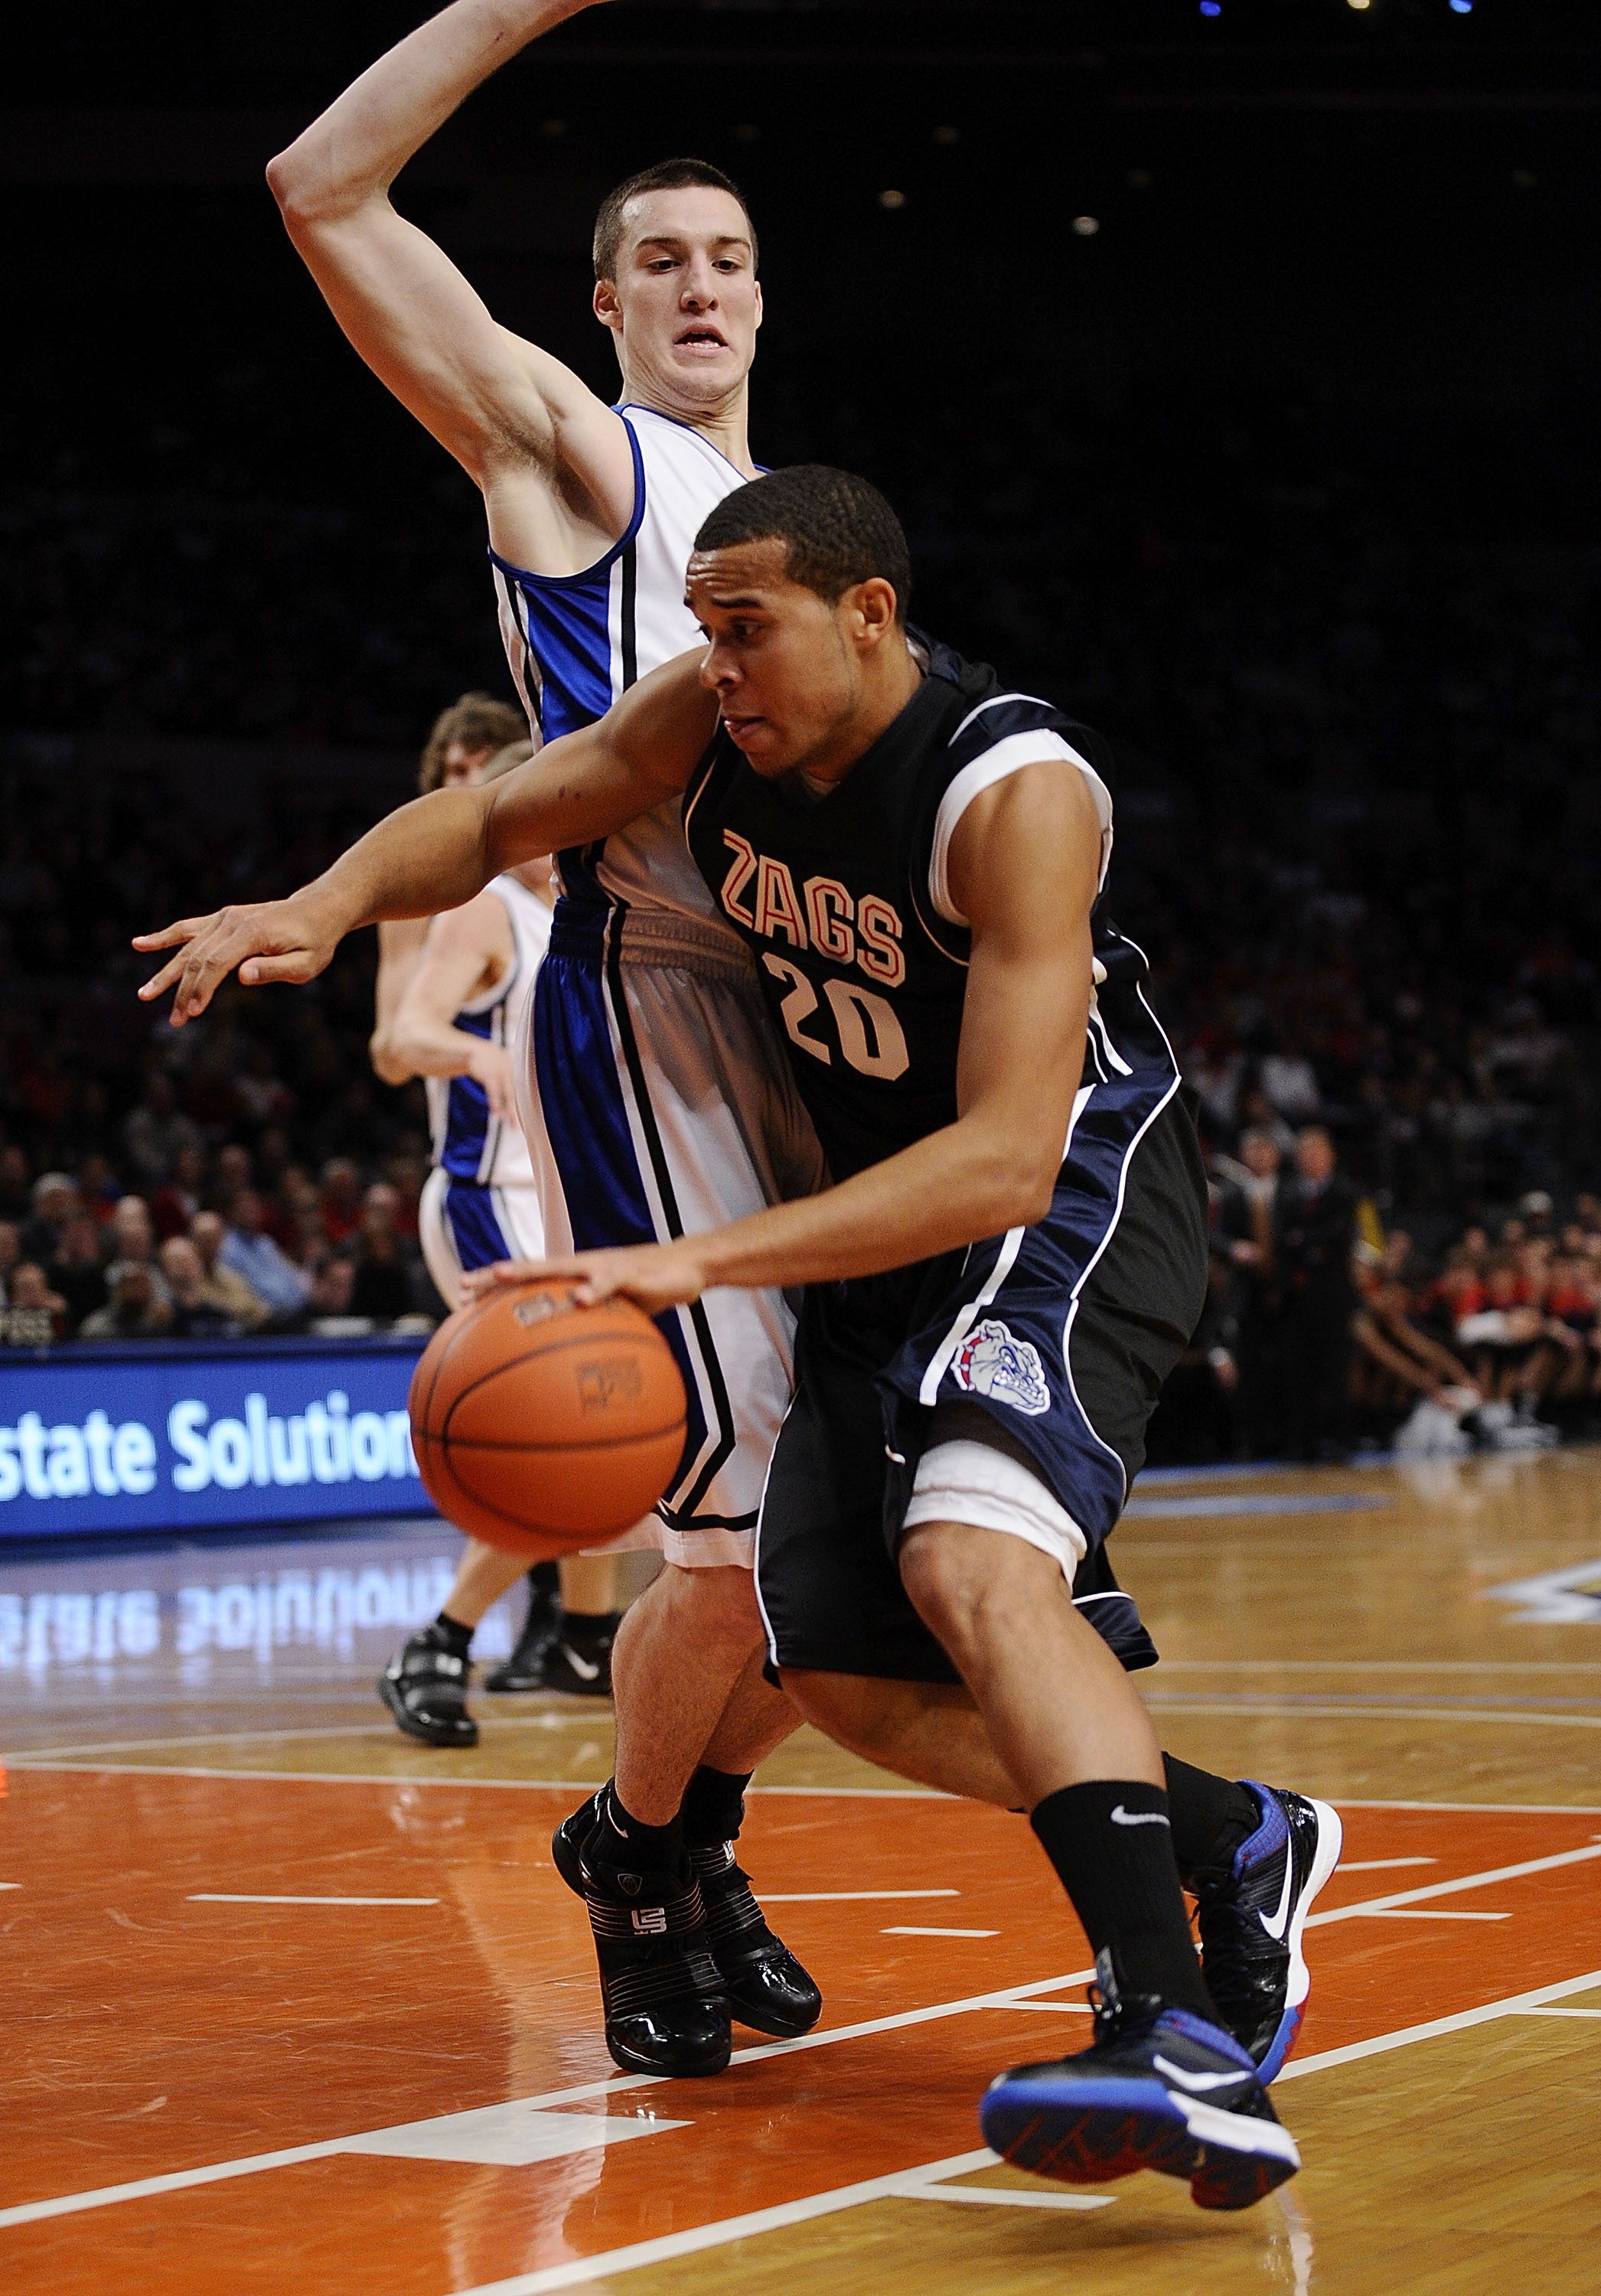 NEW YORK - DECEMBER 19:   Elias Harris #20 of the Gonzaga Bulldogs drives around Miles Plumlee #21 of the Duke Blue Devils in the first half of the Aeropostale Classic at Madison Square Garden on December 19, 2009 in New York City.  (Photo by Jeff Zelevan